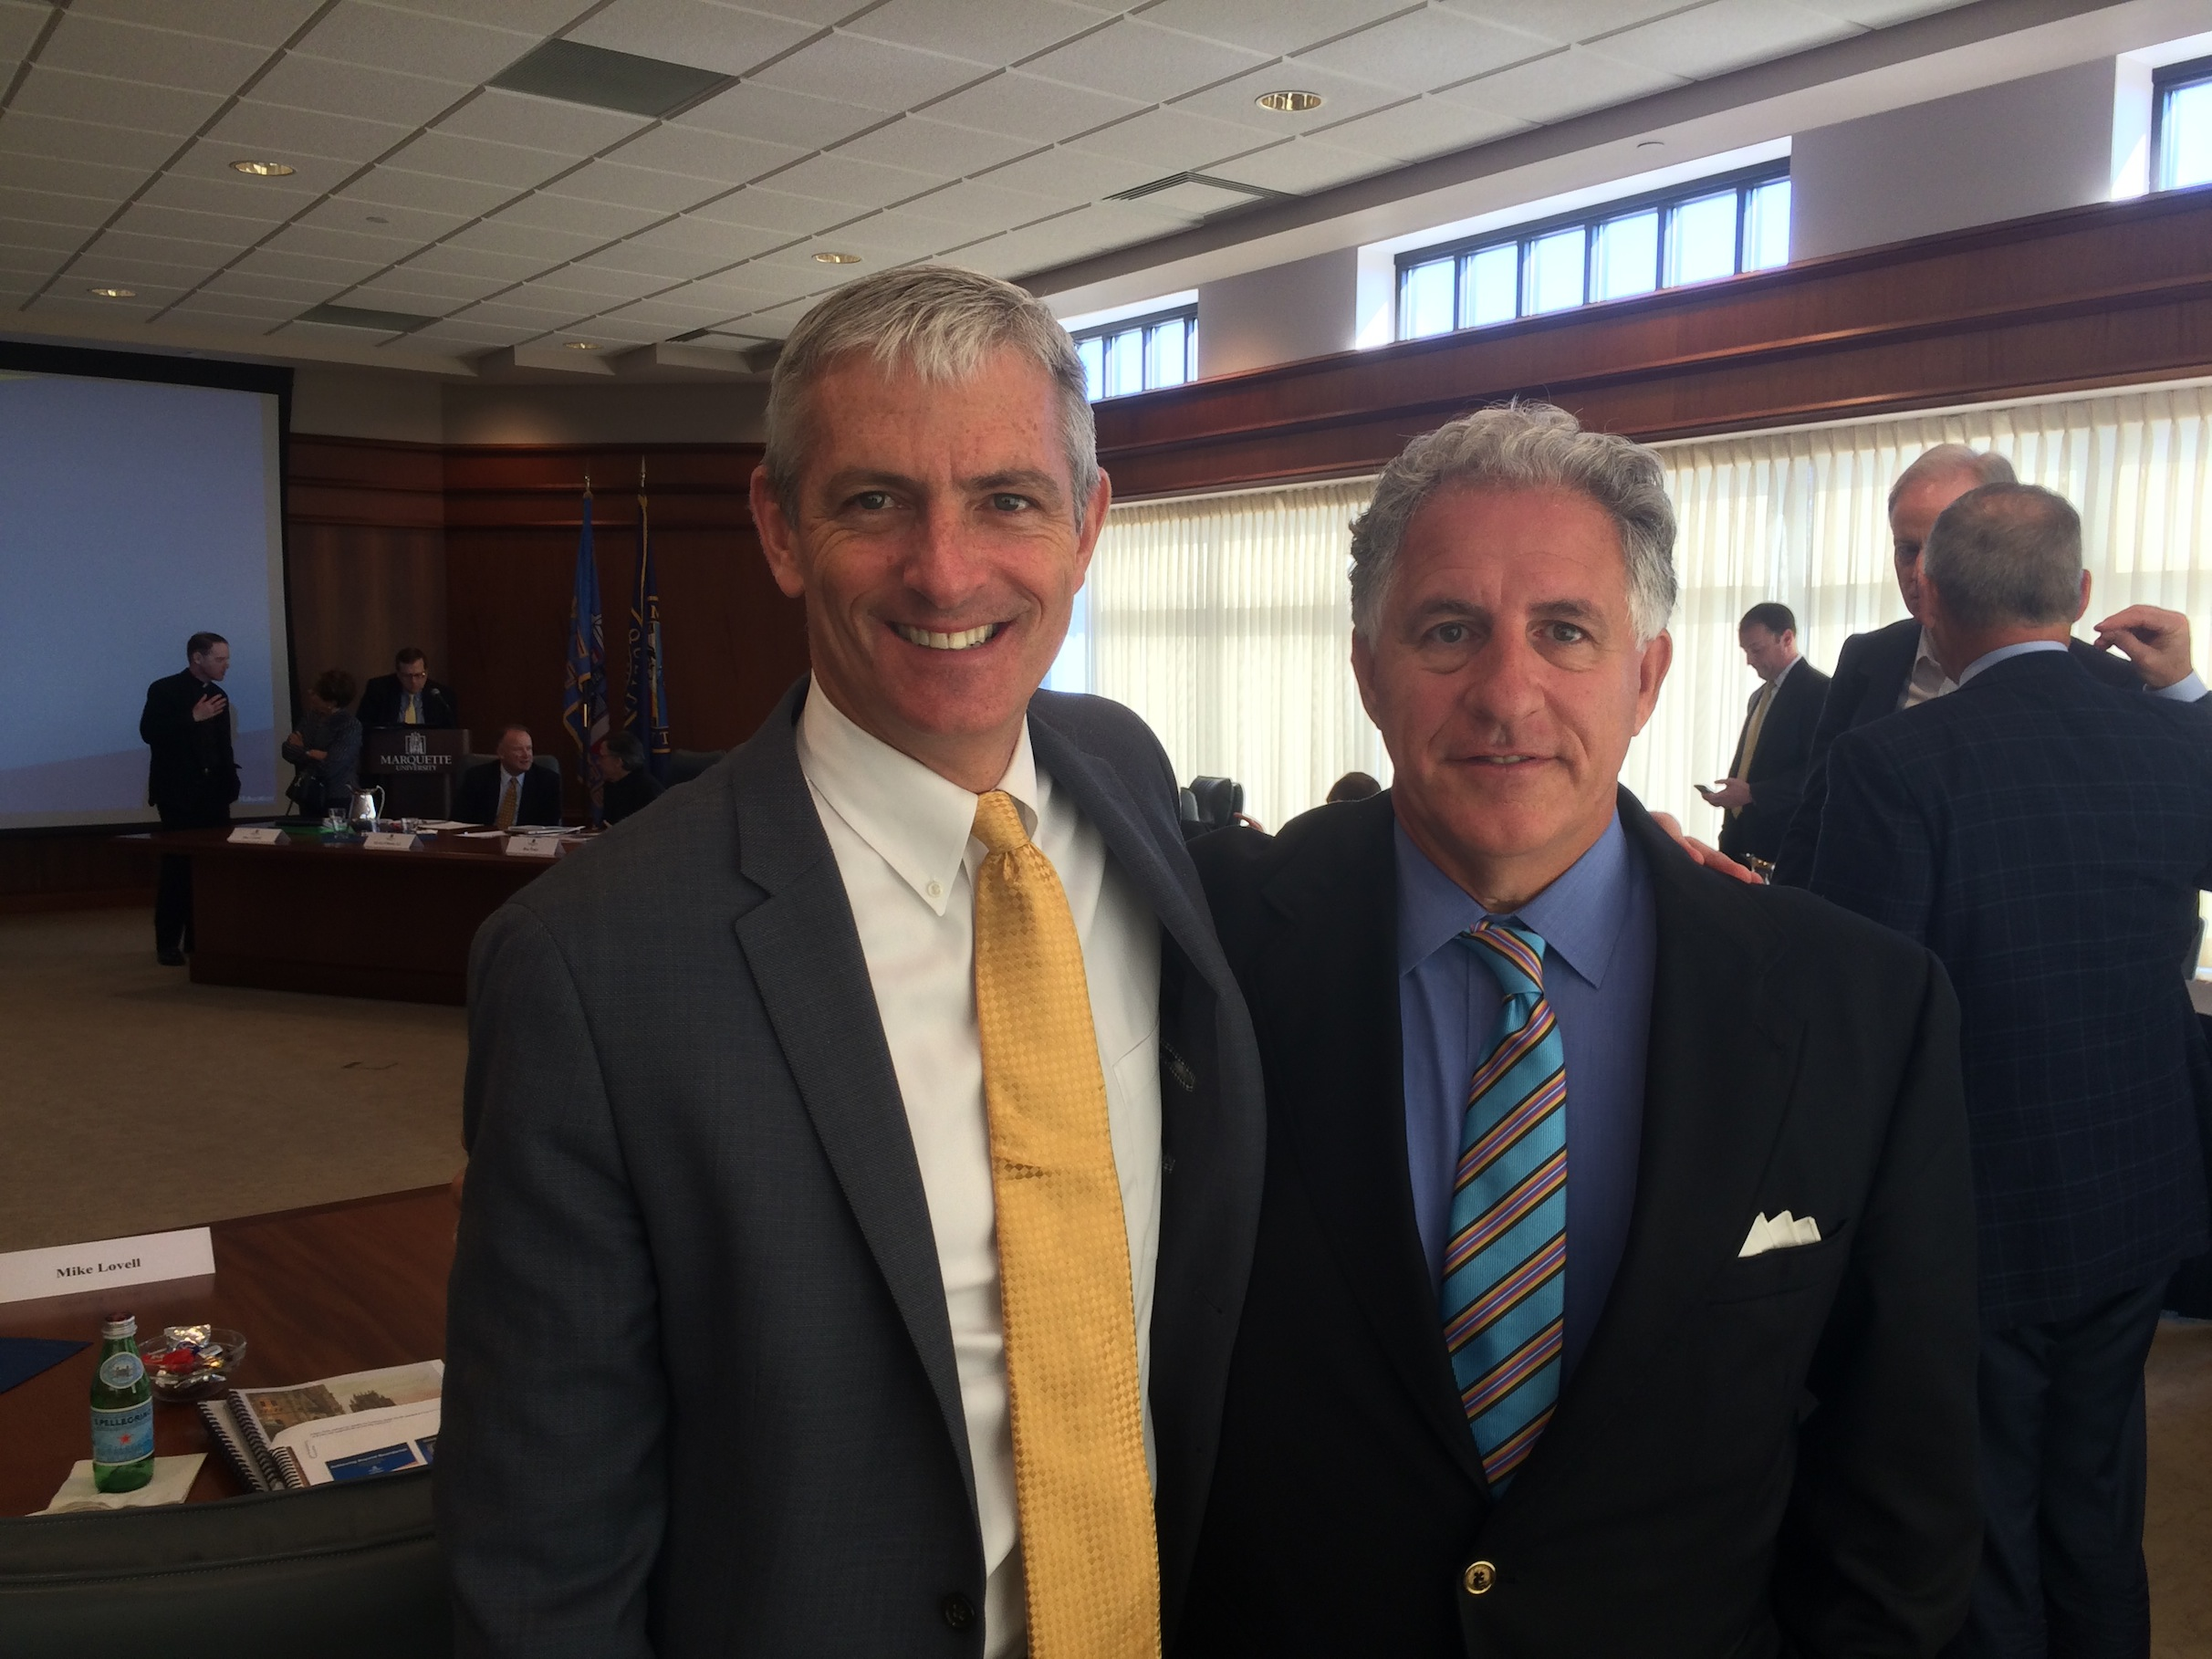 University President Michael Lovell and Chair John Ferraro pose in the board room after the most recent meeting. Photo courtesy of Brian Dorrington.